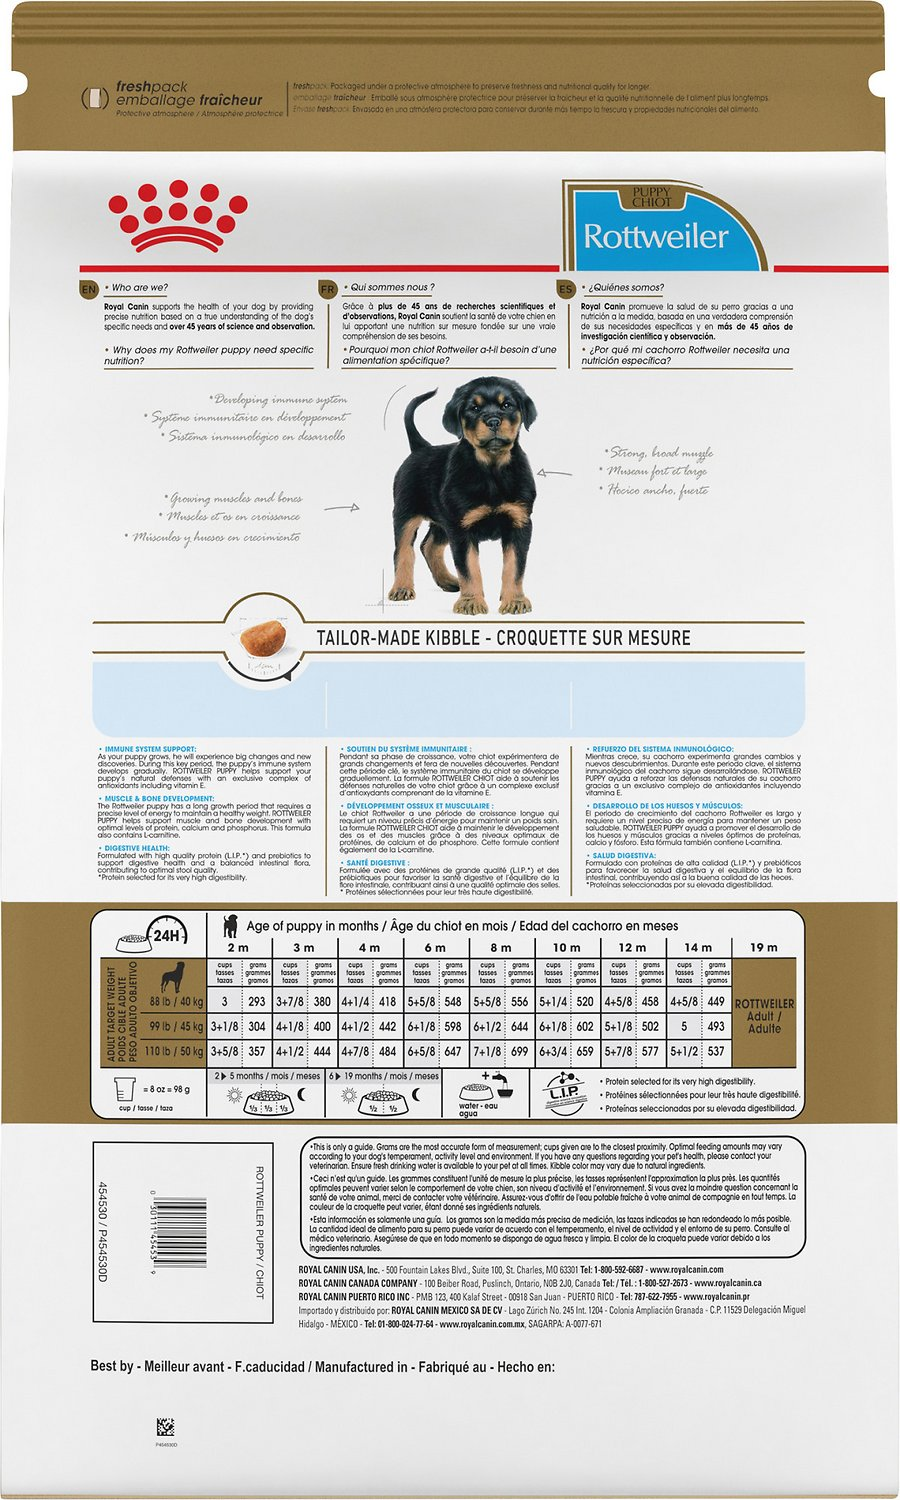 Royal Canin Rottweiler Puppy Food Reviews